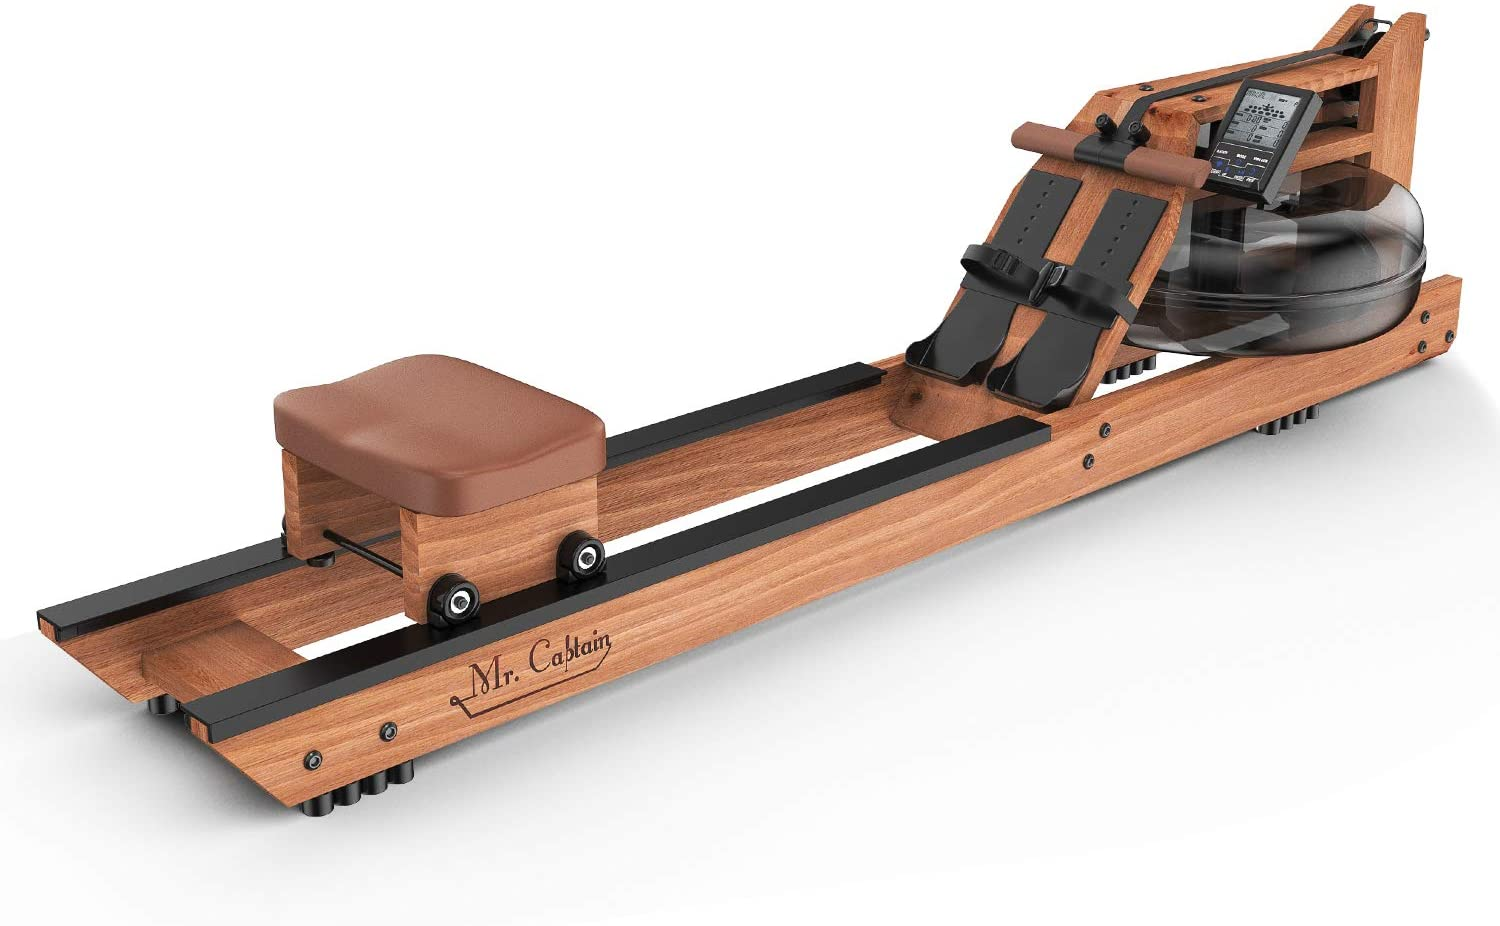 Mr Captain Rowing Machine for Home Use